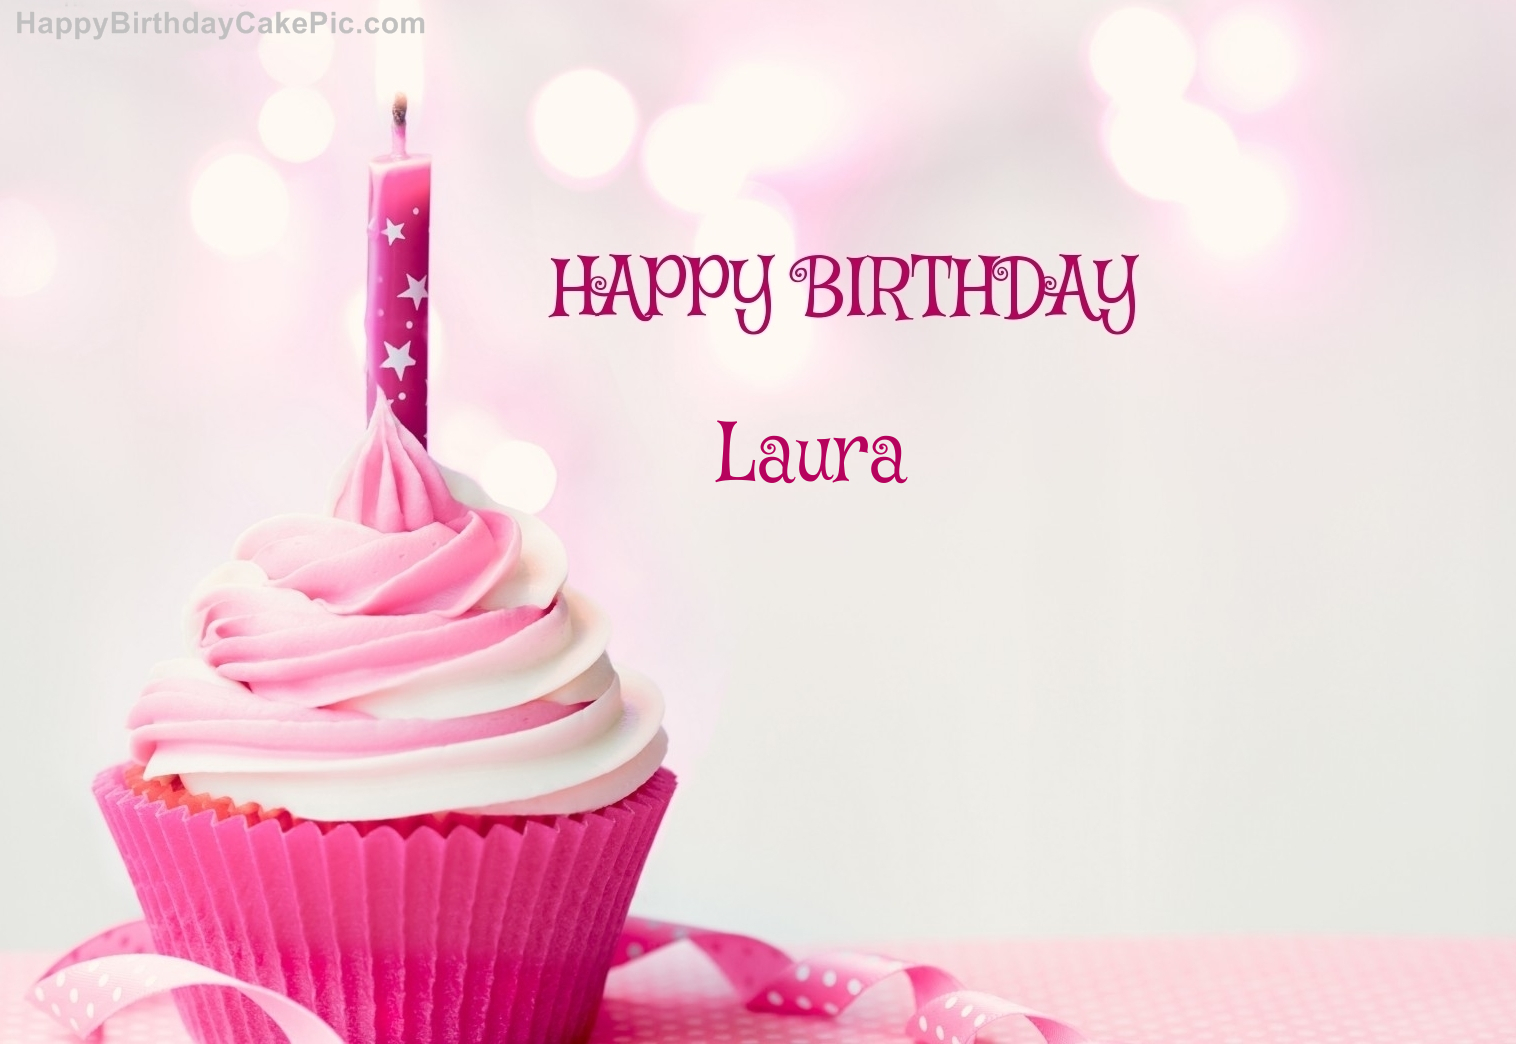 Happy Birthday Cupcake Candle Pink Cake For Laura